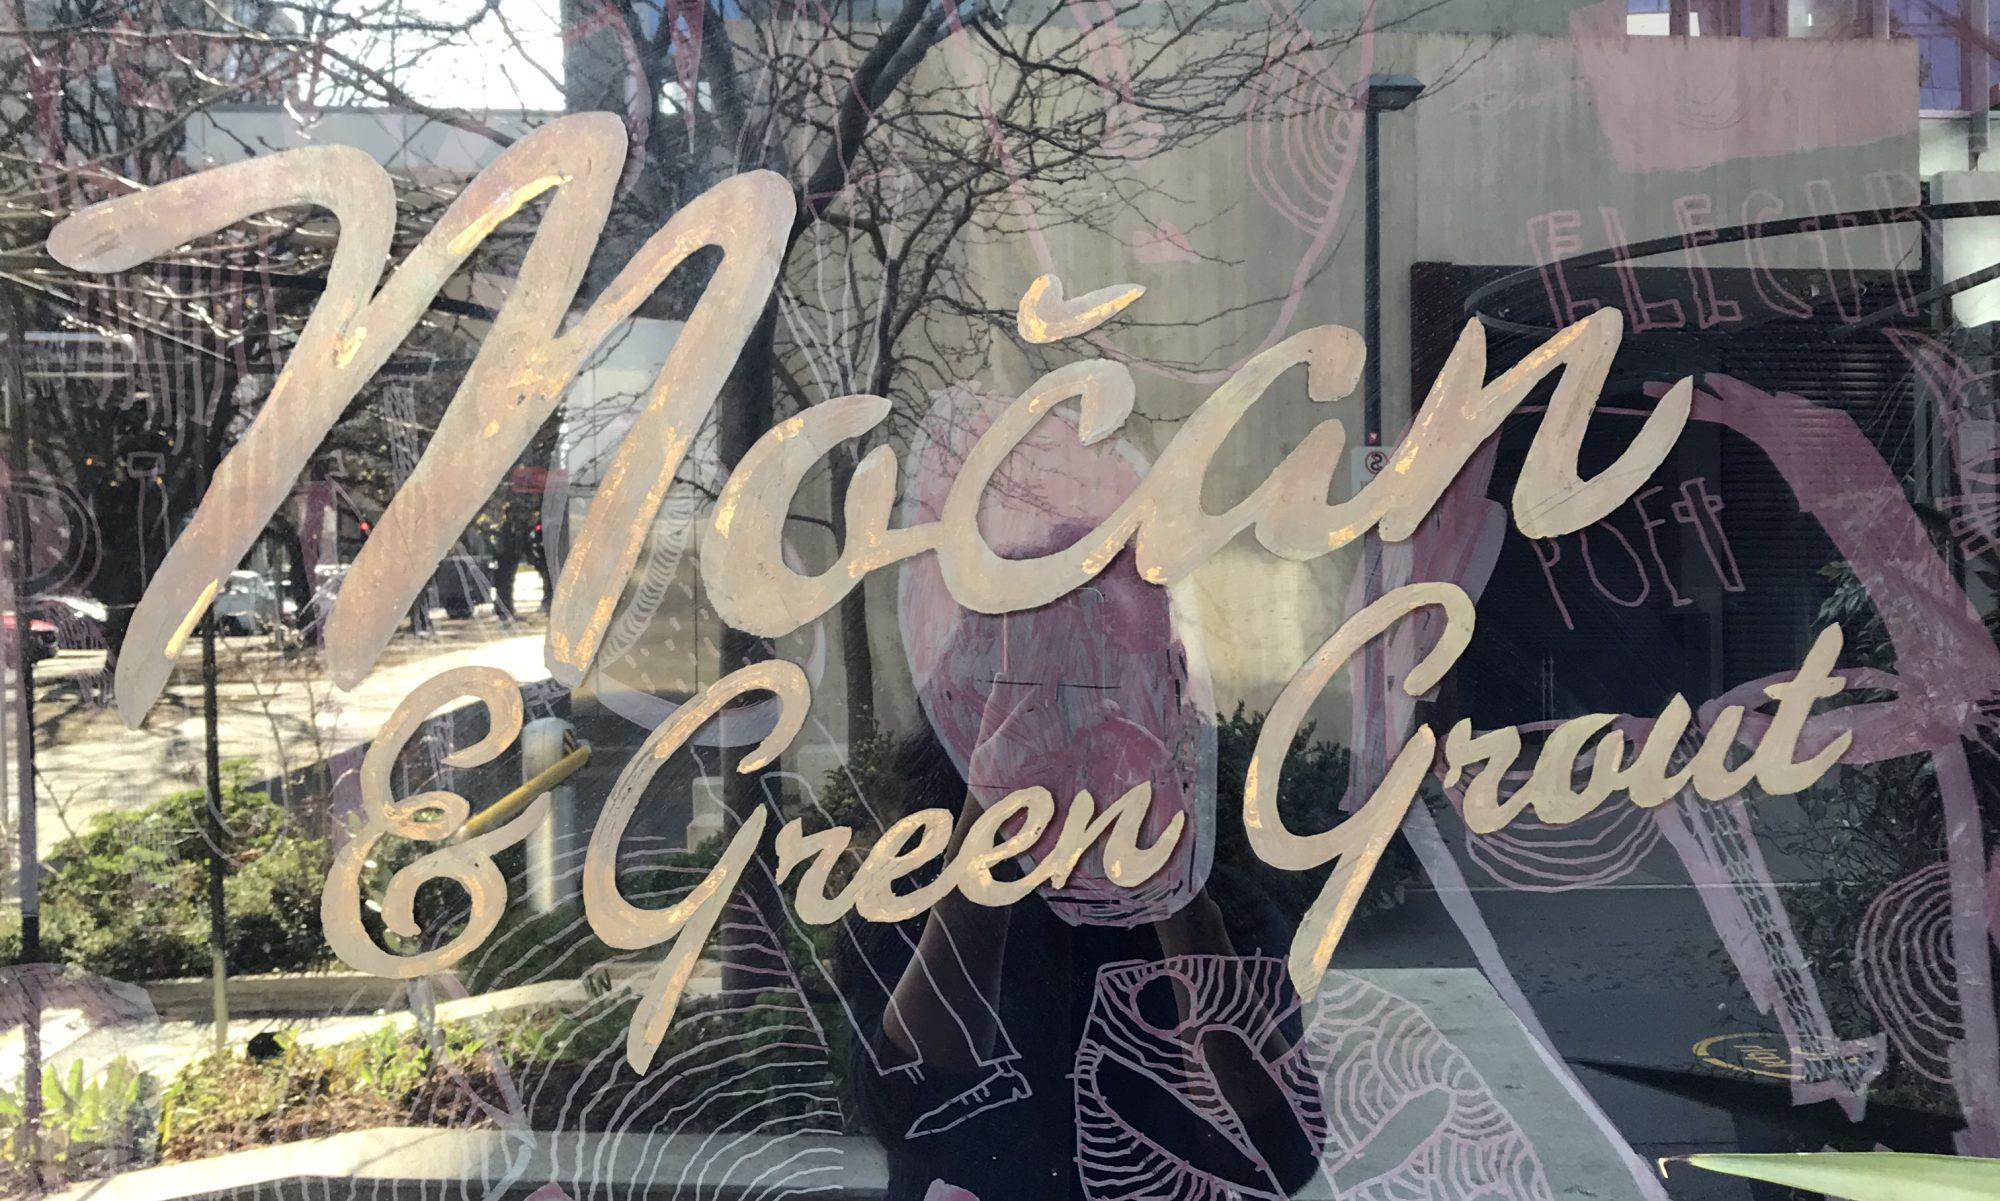 Mocan & Green Grout